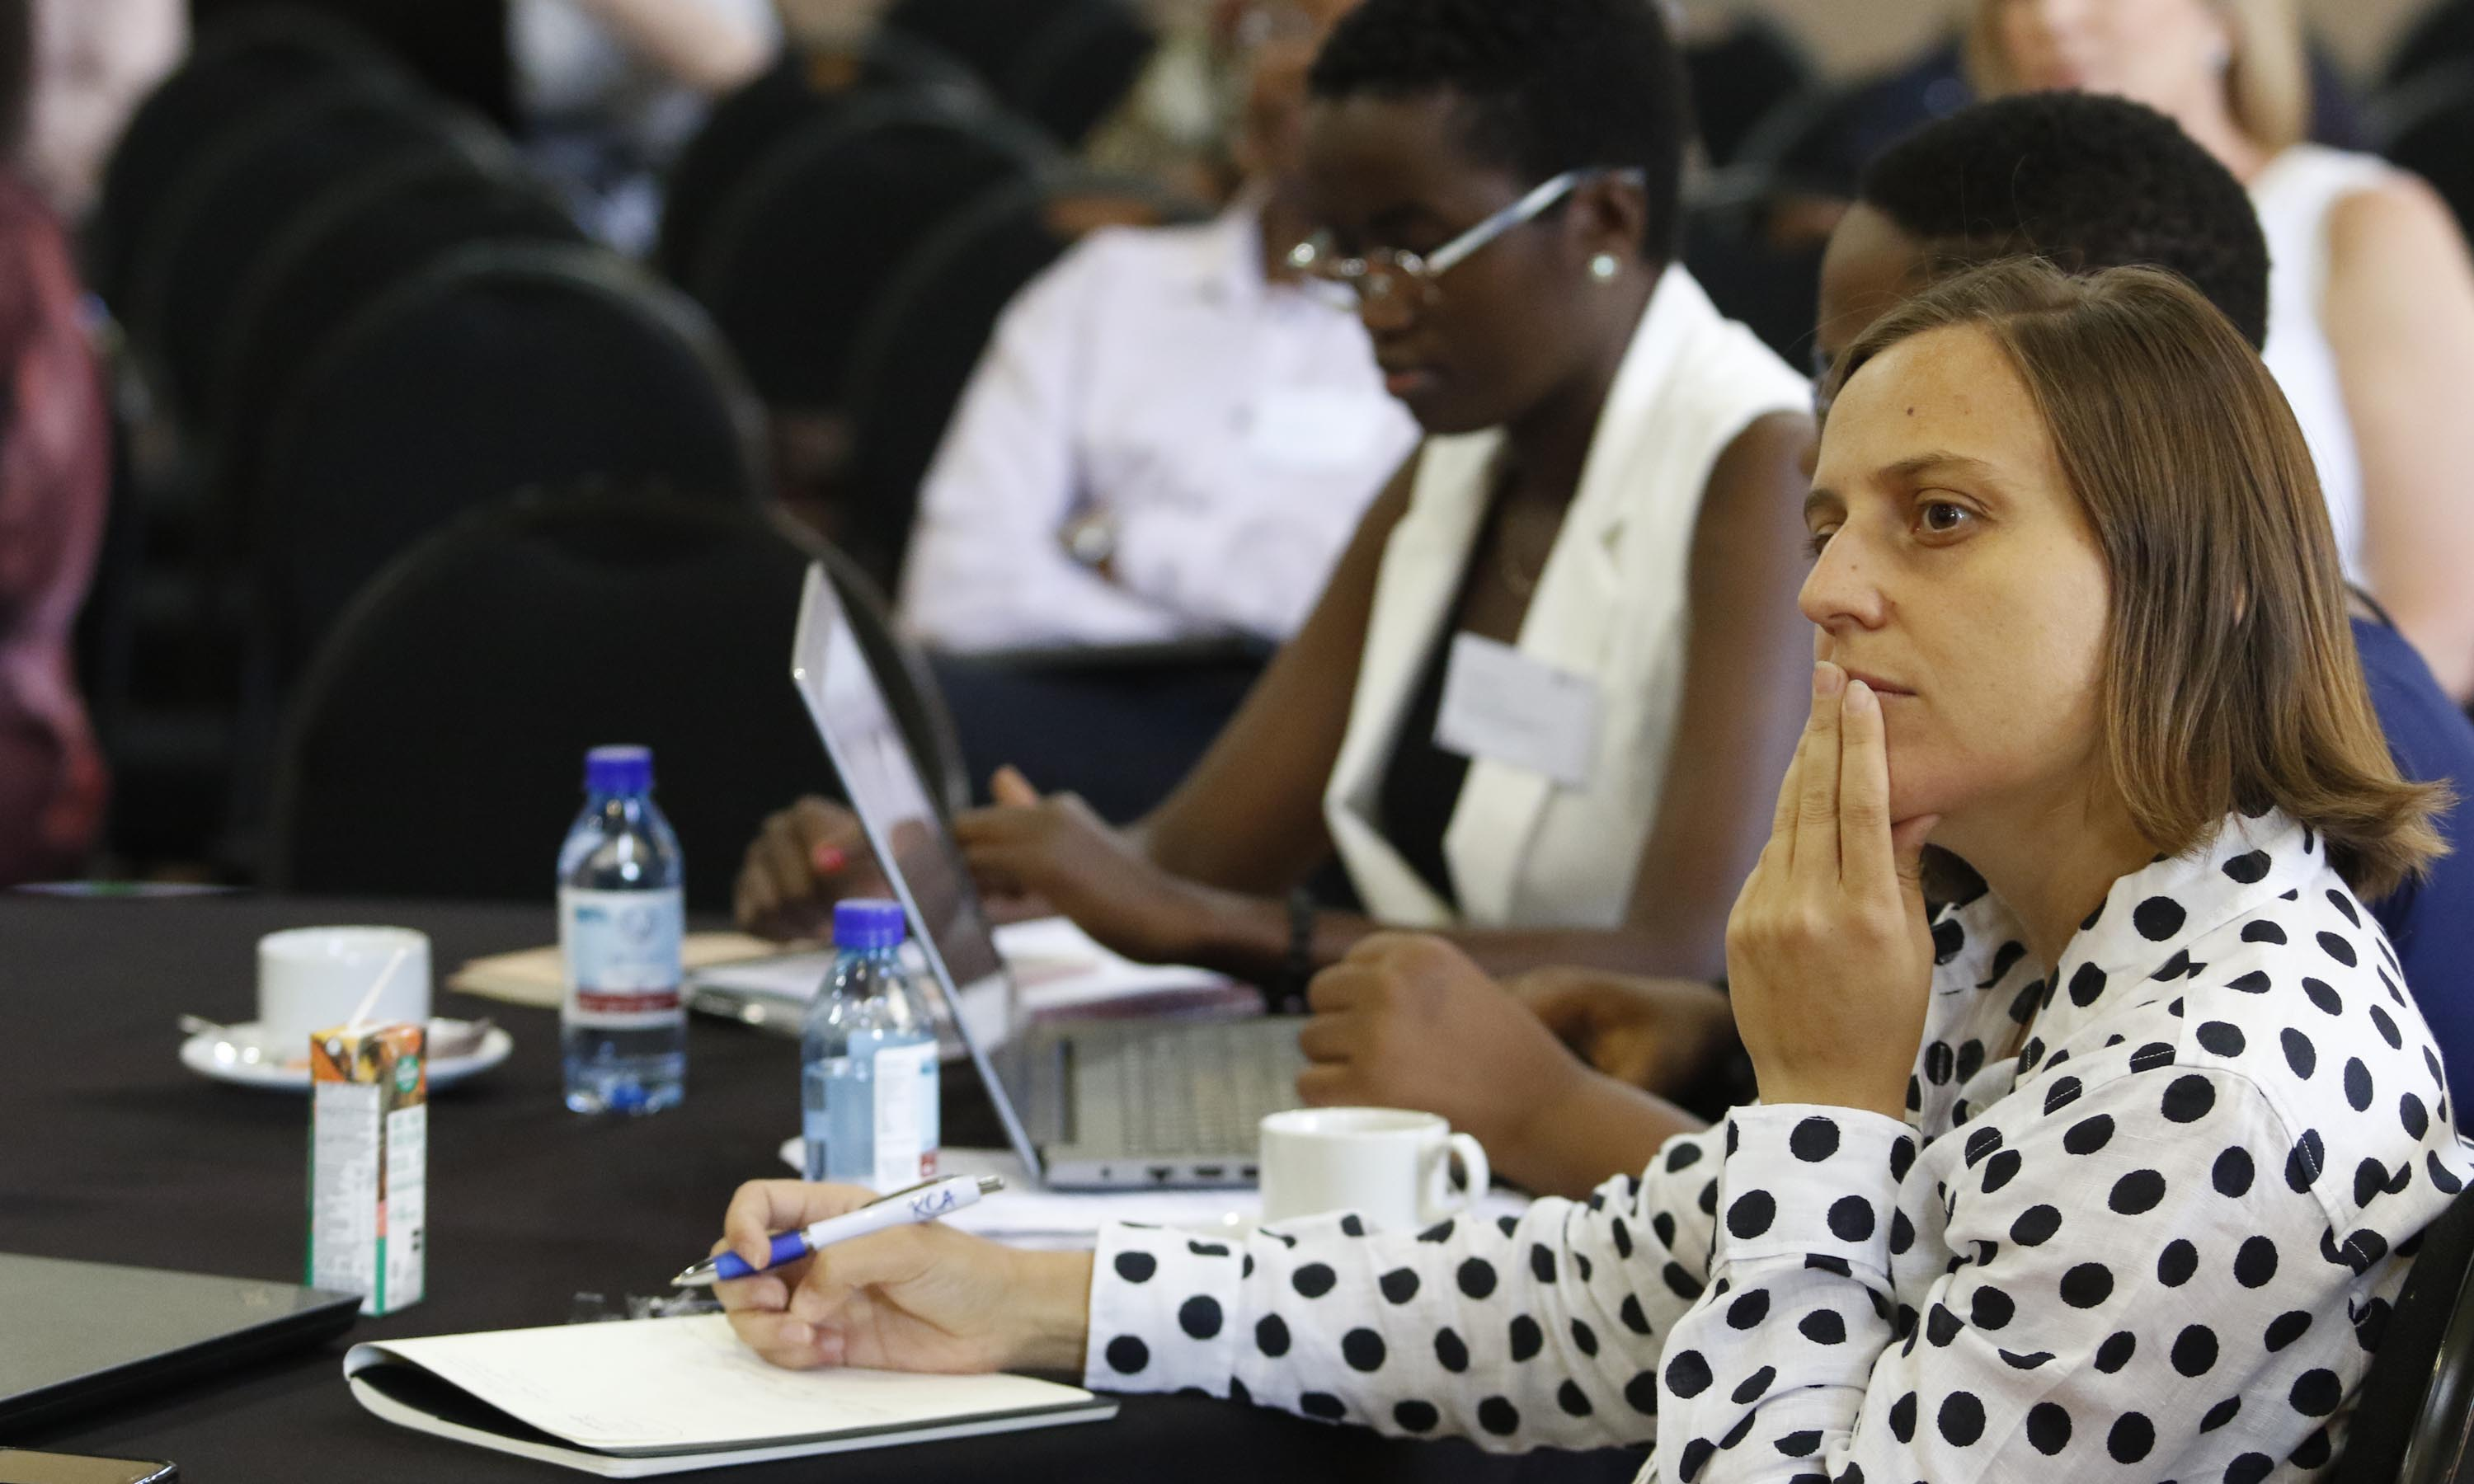 The colloquium was a platform to share and collaborate on complex issues in higher education.